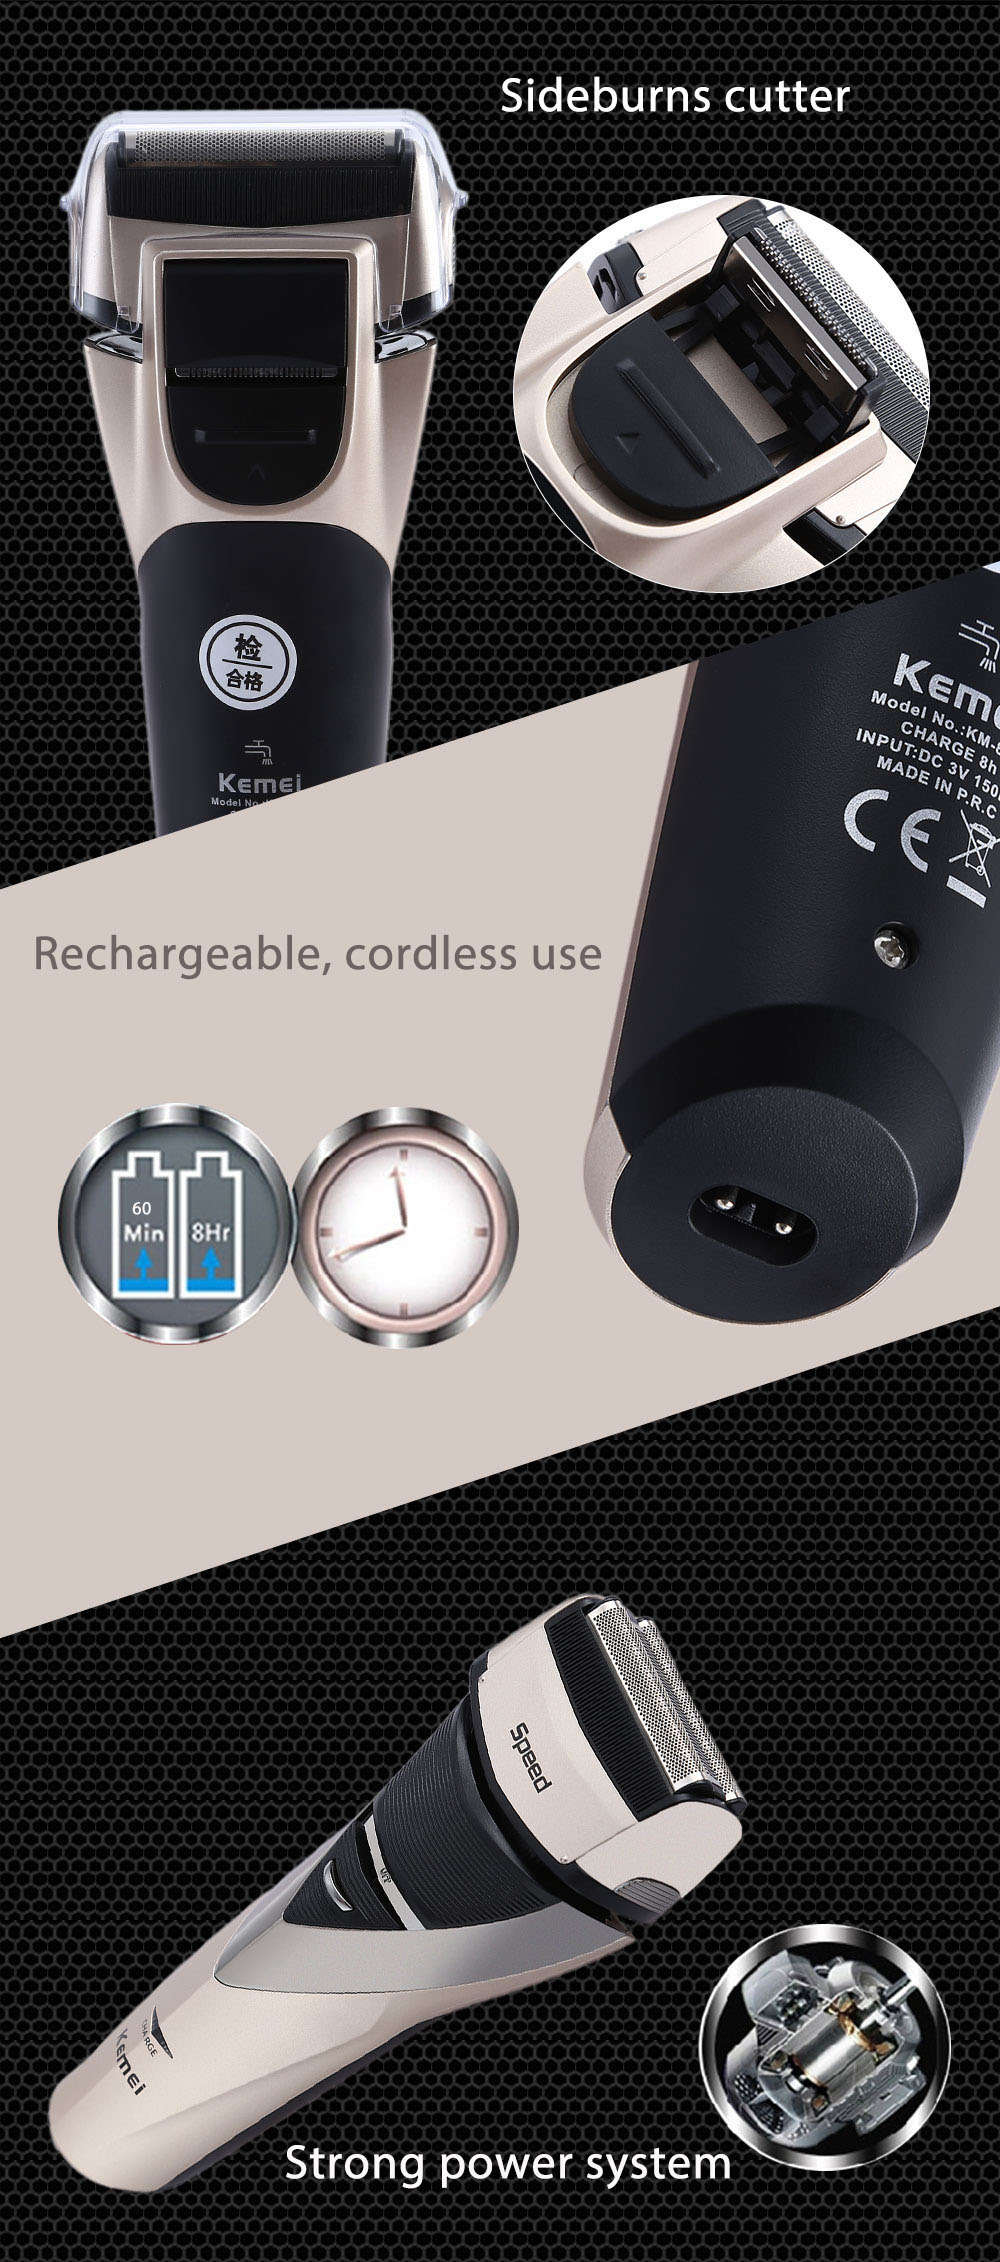 Kemei KM - 8102 3D Men Waterproof Full Washable Rechargeable Reciprocating Triple Blade Electric Razor Shaver Trimmer Face Care Wet Dry Double Use